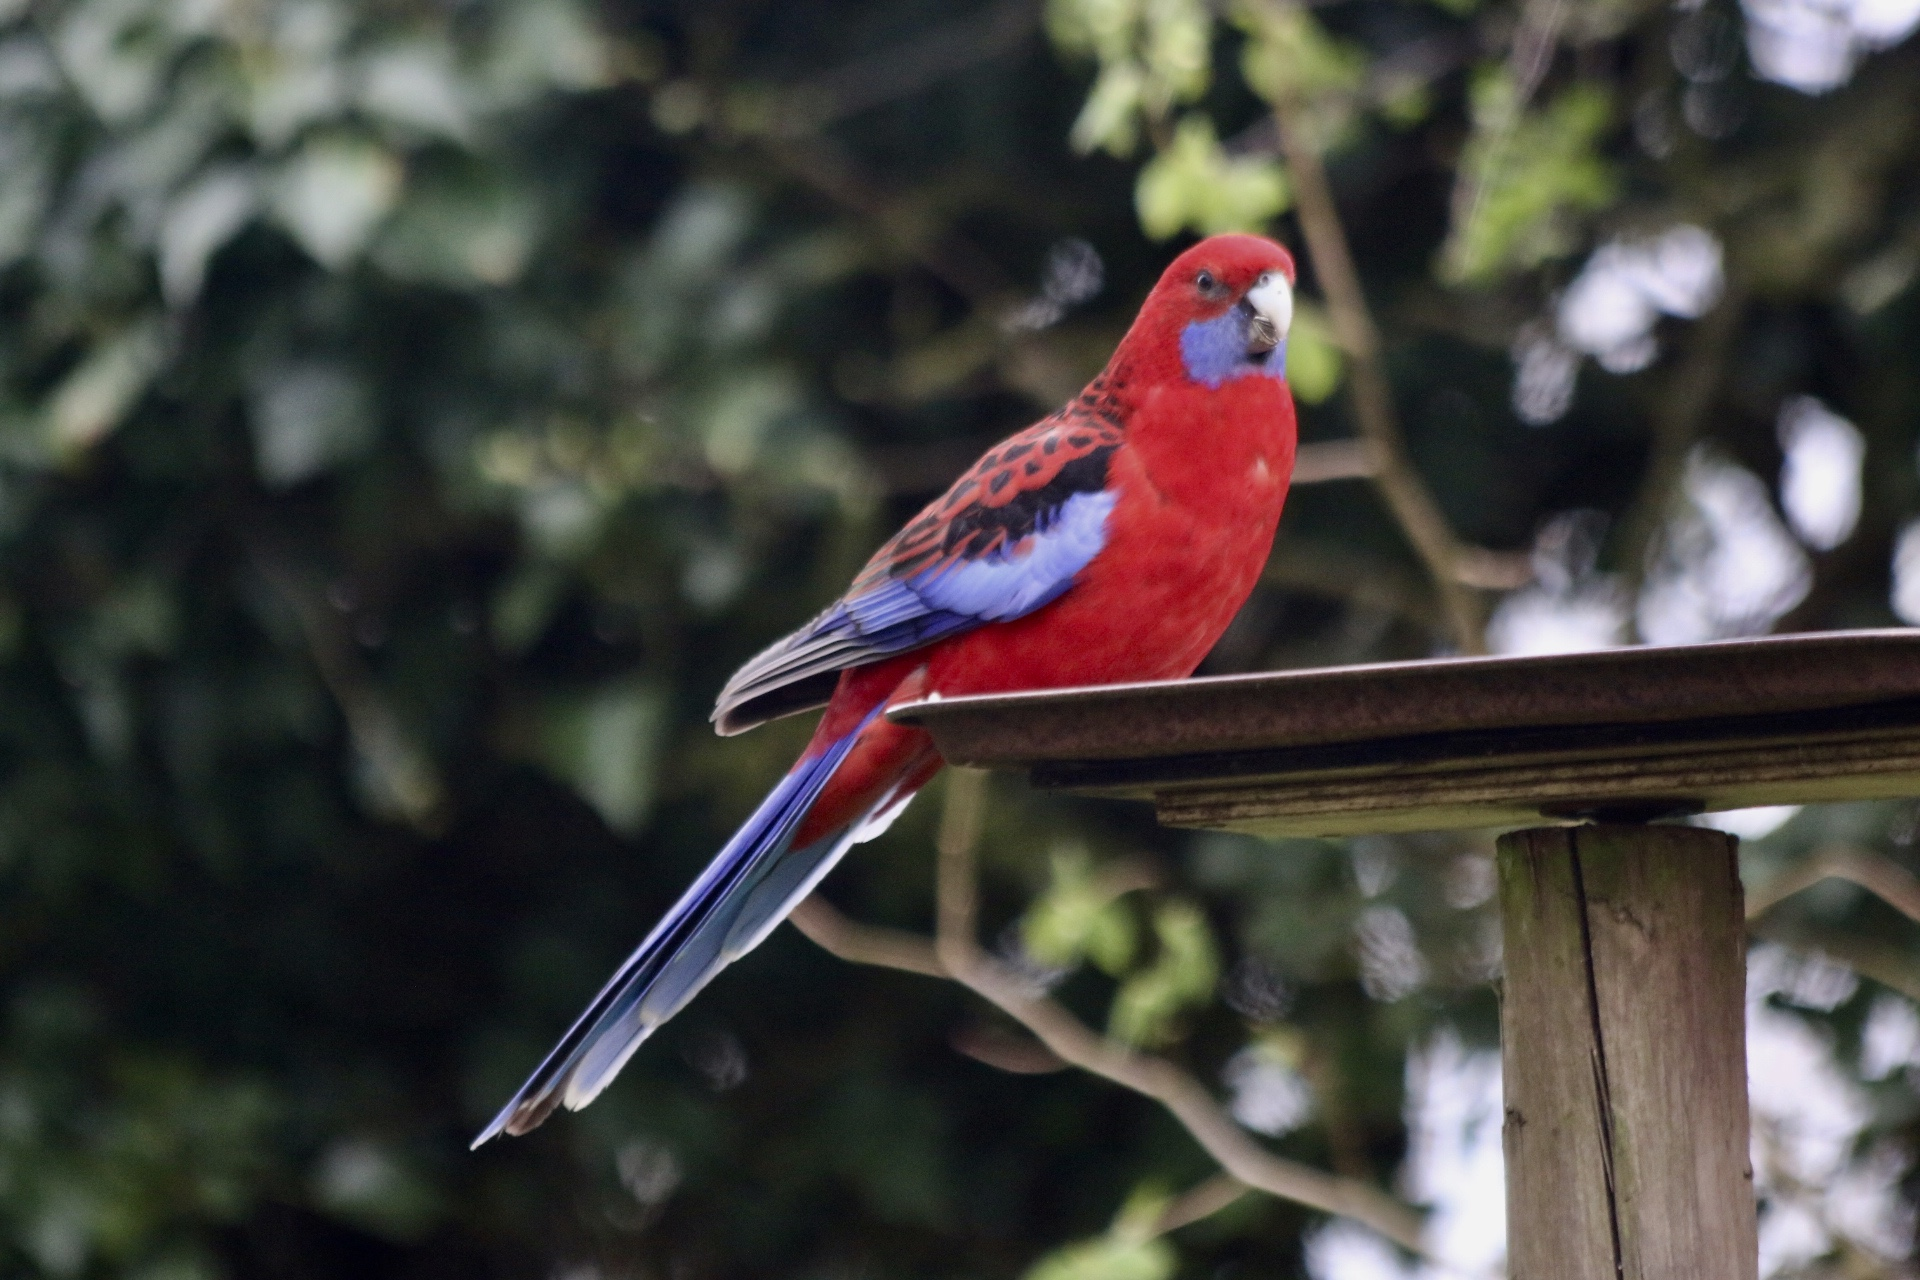 Parrot spotted in a garden in Lockton. Picture: Colin Culley